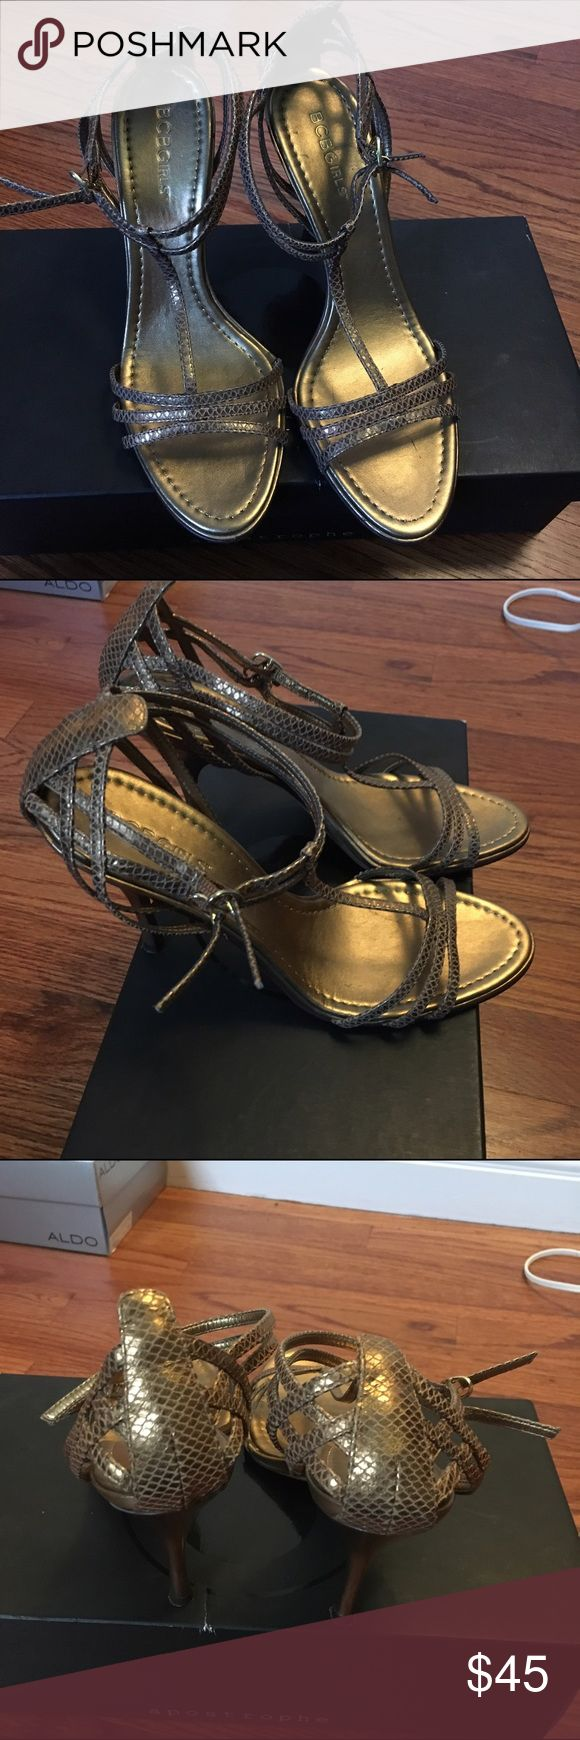 Brown/gold sandal heels Snake skin type look. T-strap with double buckles for closure. BCBGirls Shoes Heels